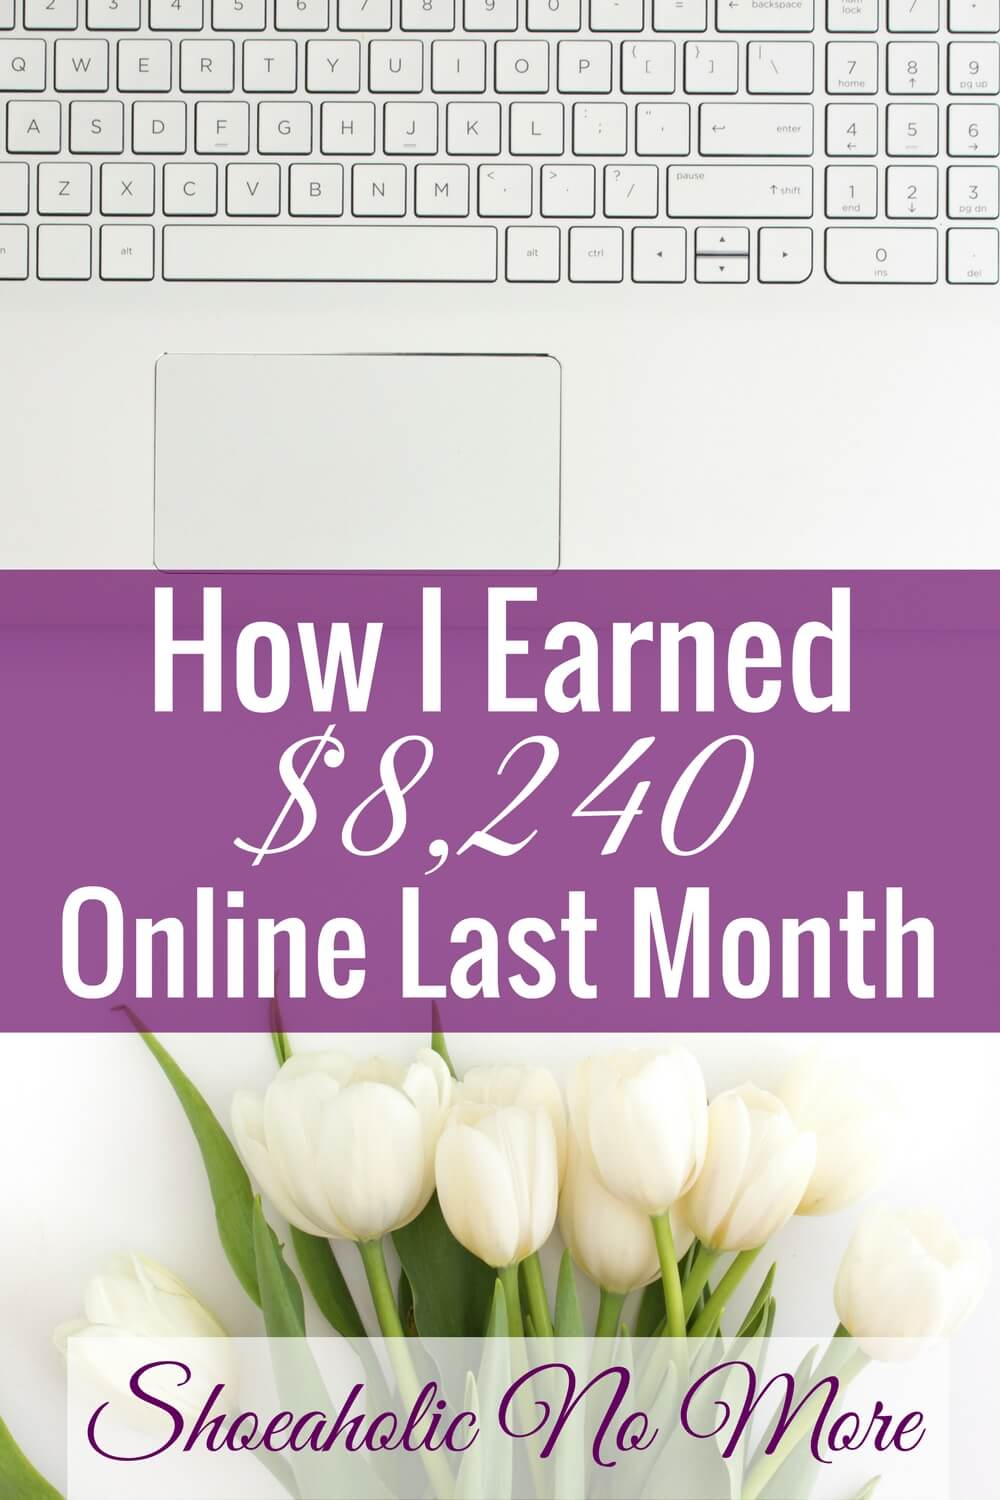 Wow! I never knew you could earn so much money online. I can't wait to try out these awesome strategies!